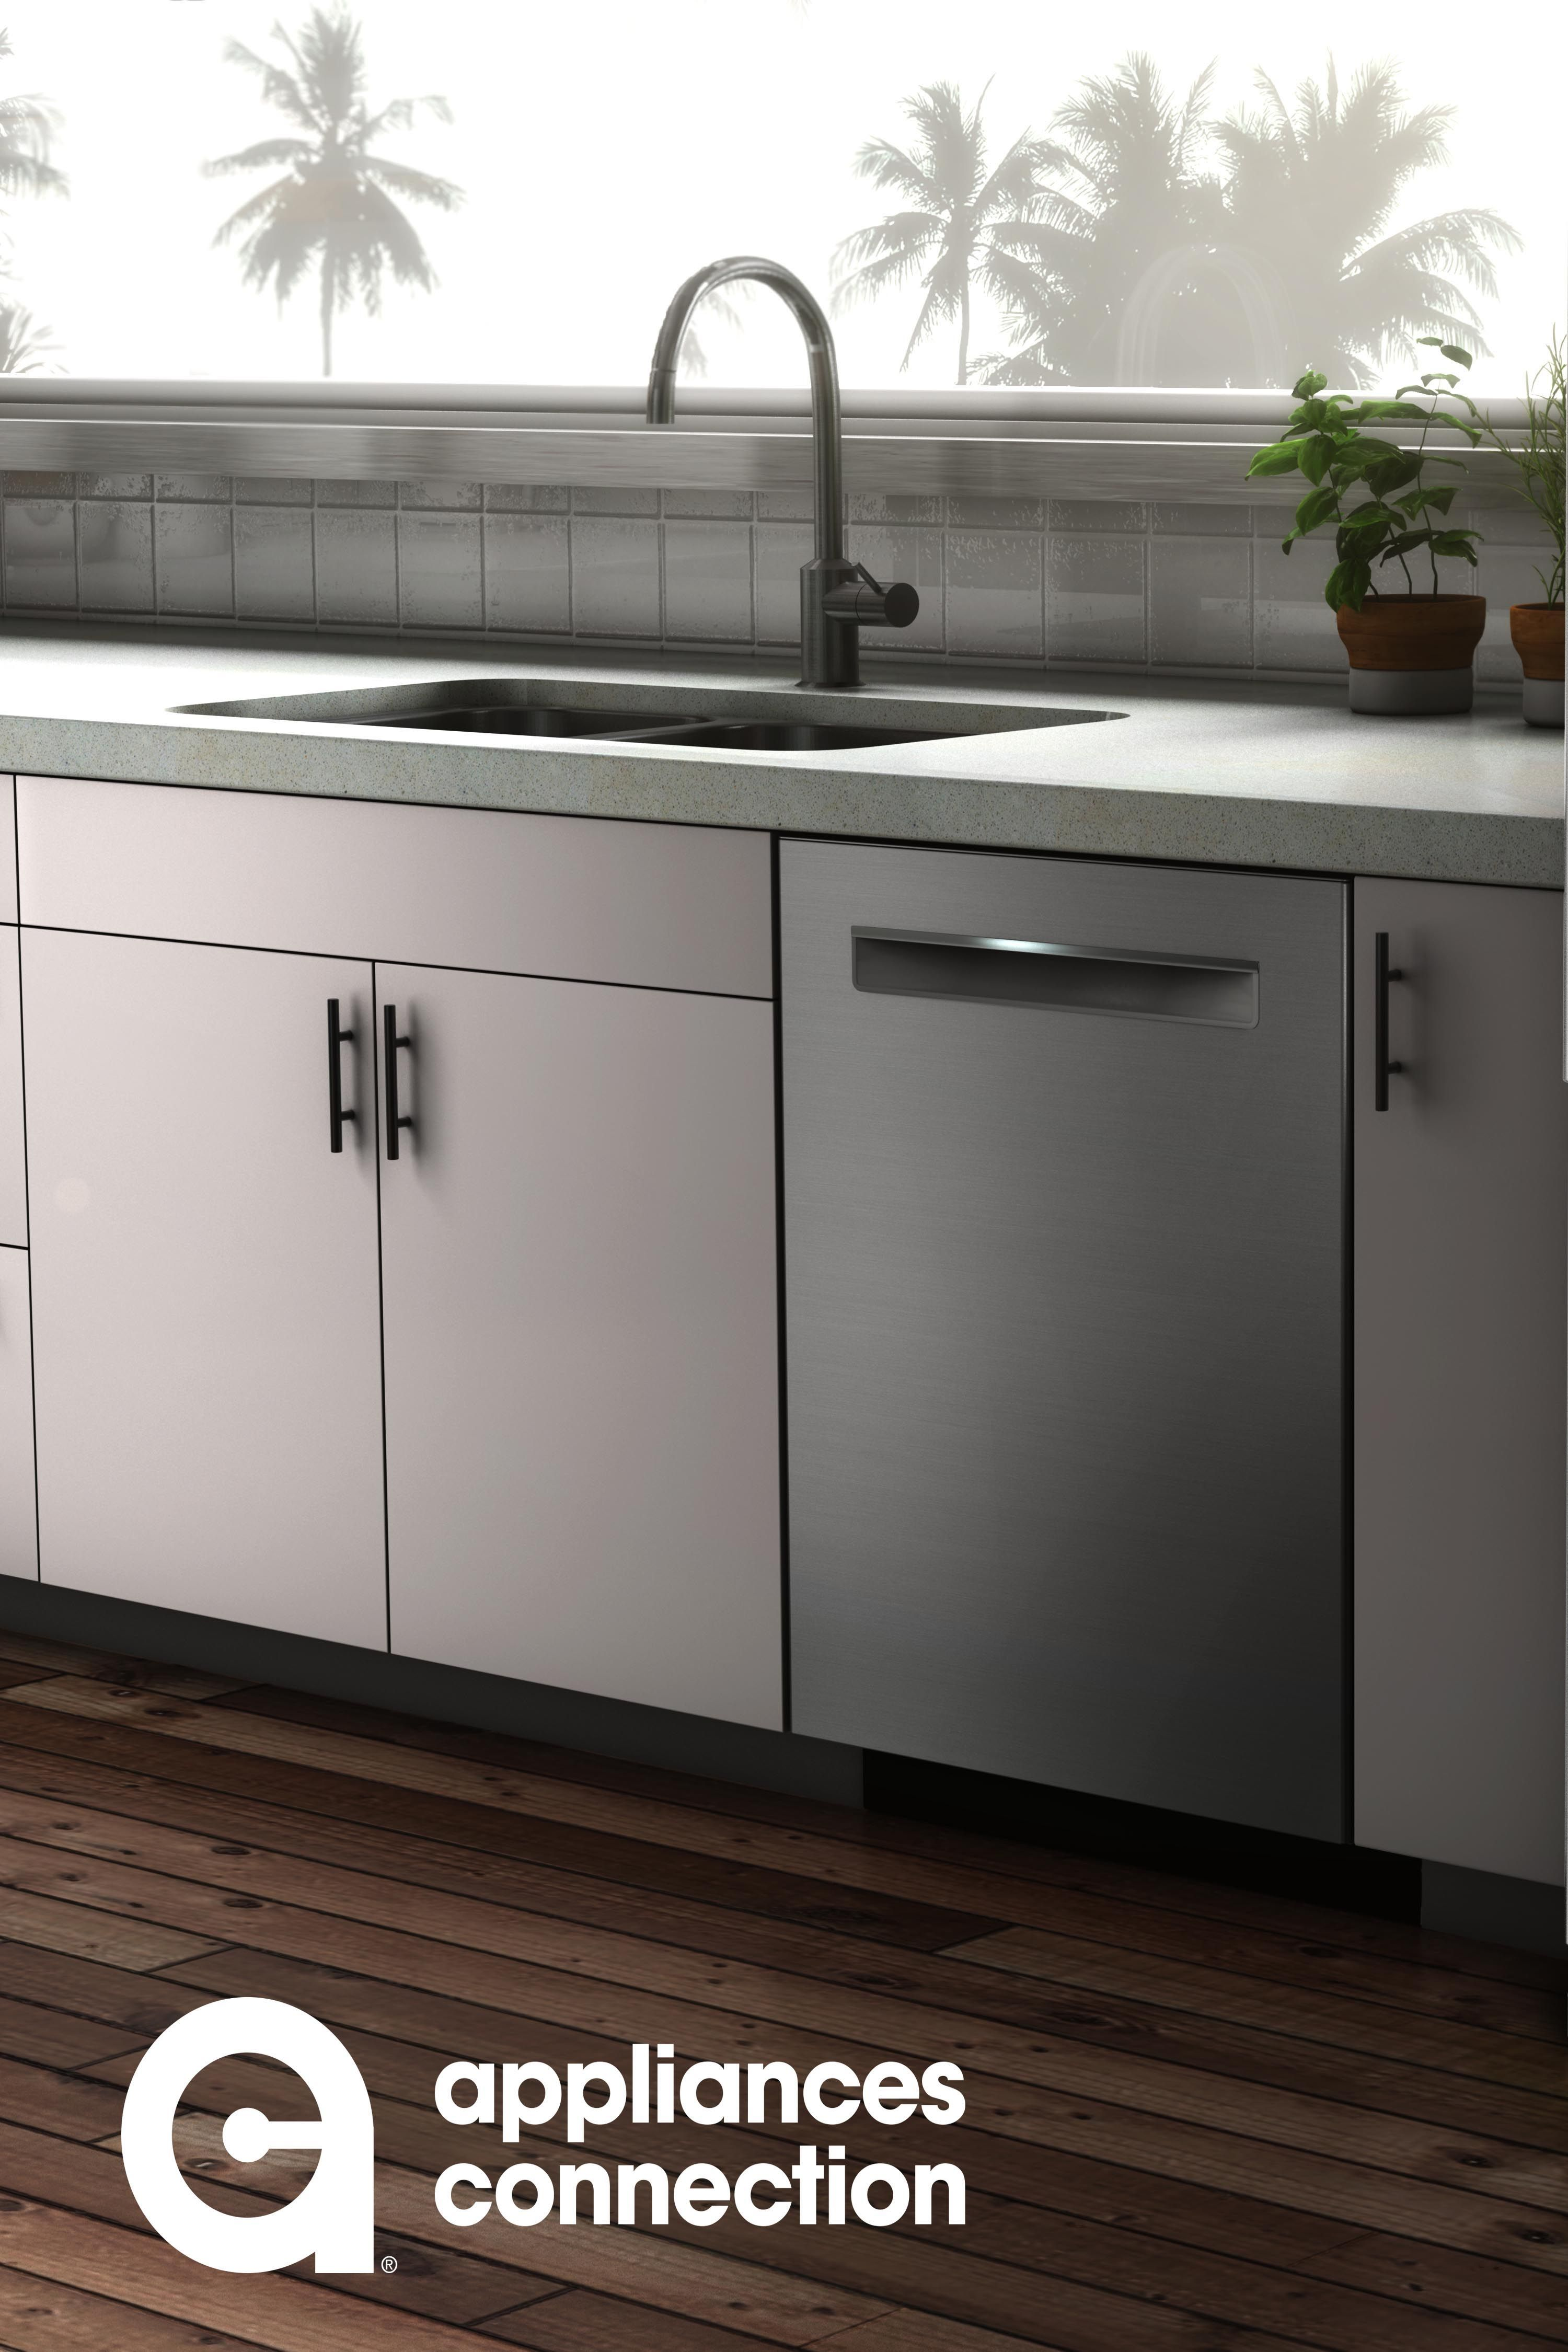 The 24 Built In Dishwasher From Bosch Will Be The Best Addition